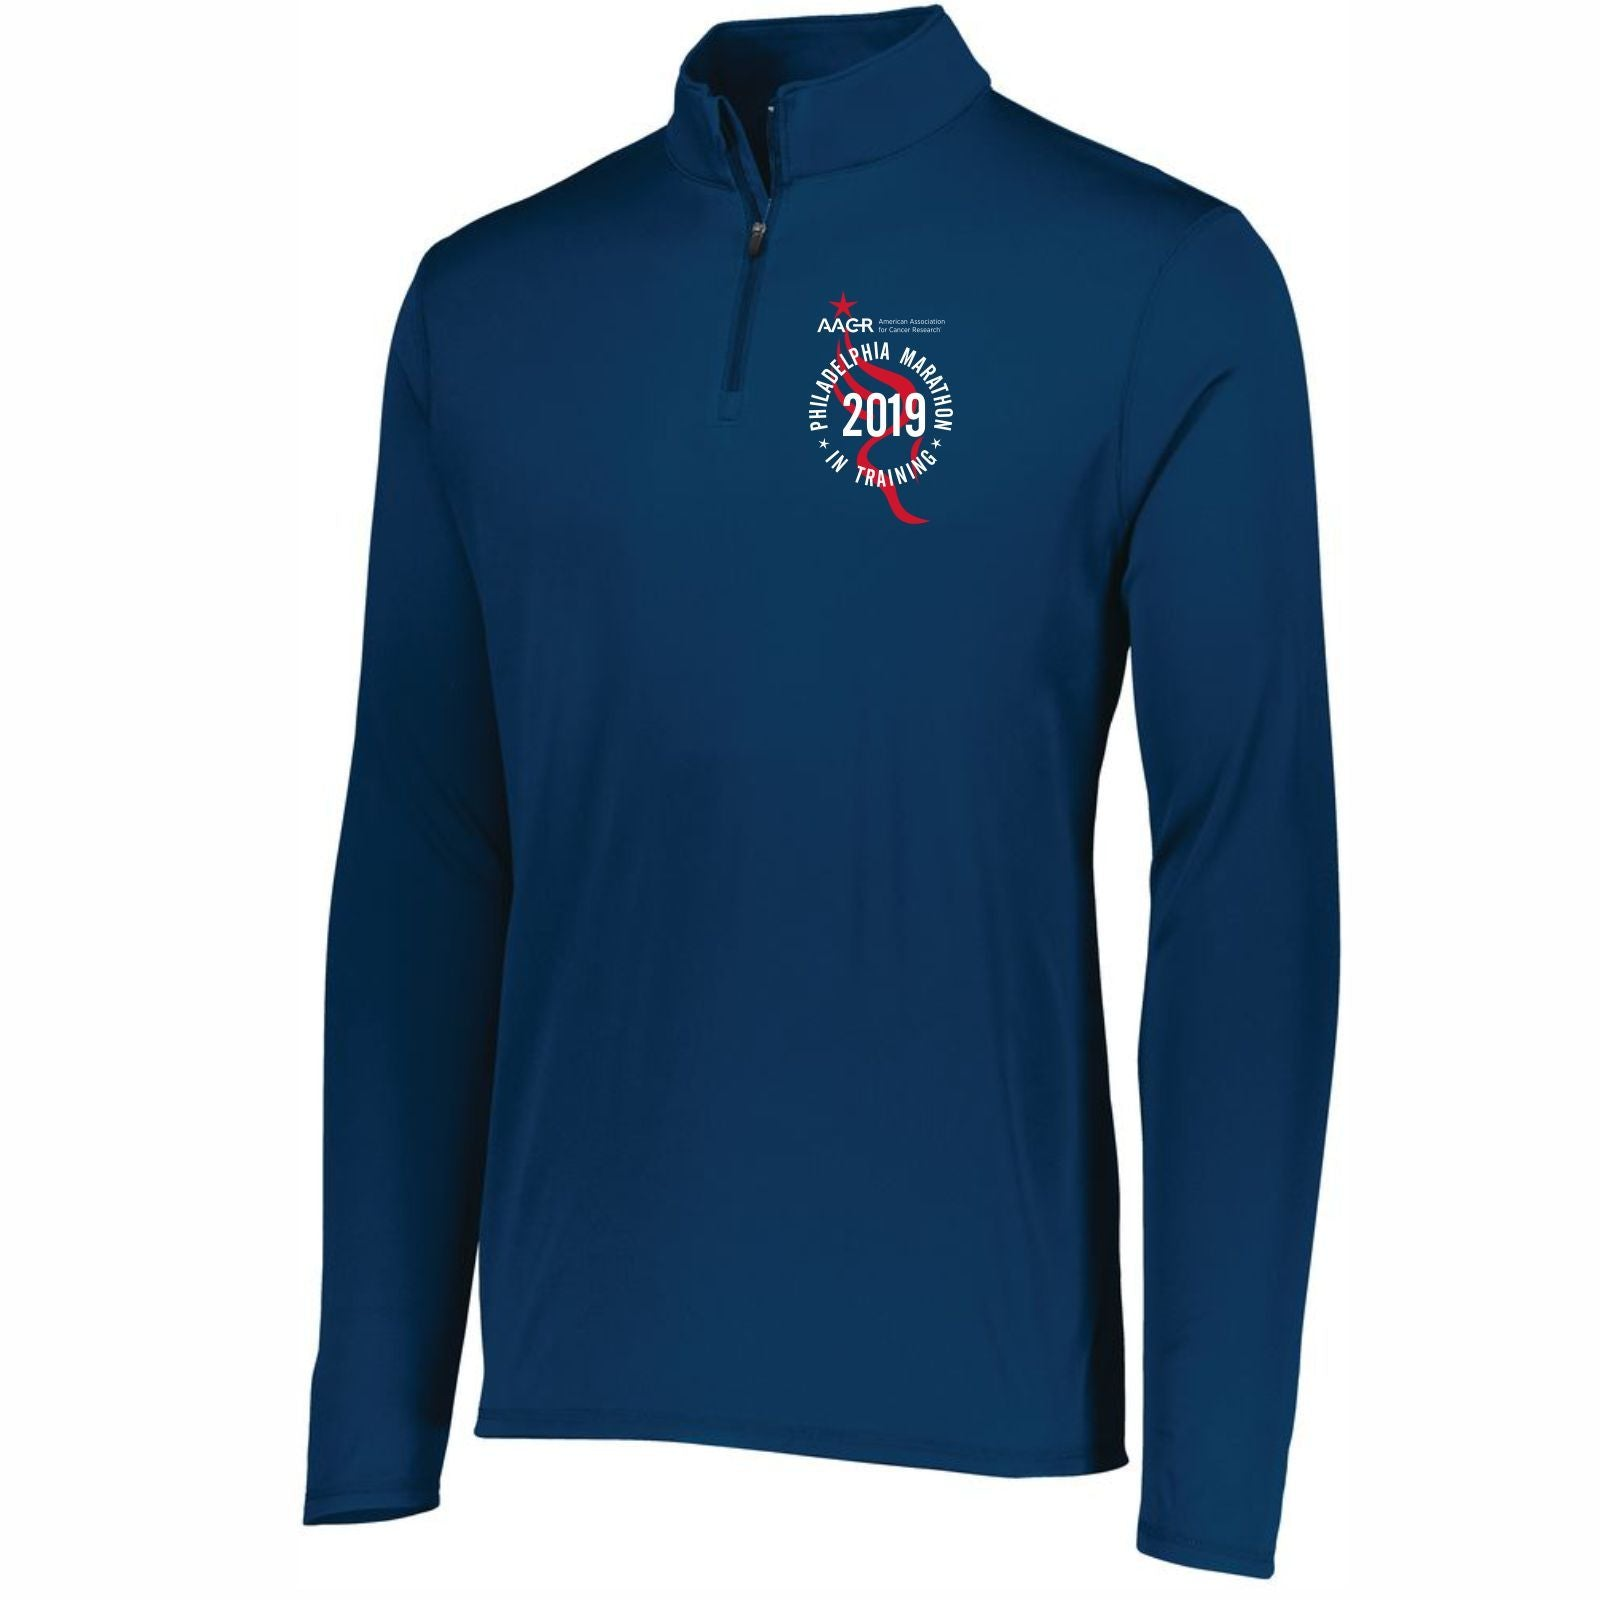 AACR Philadelphia Marathon 'In Training 2019' Men's Tech 1/4 Zip Pullover - Navy